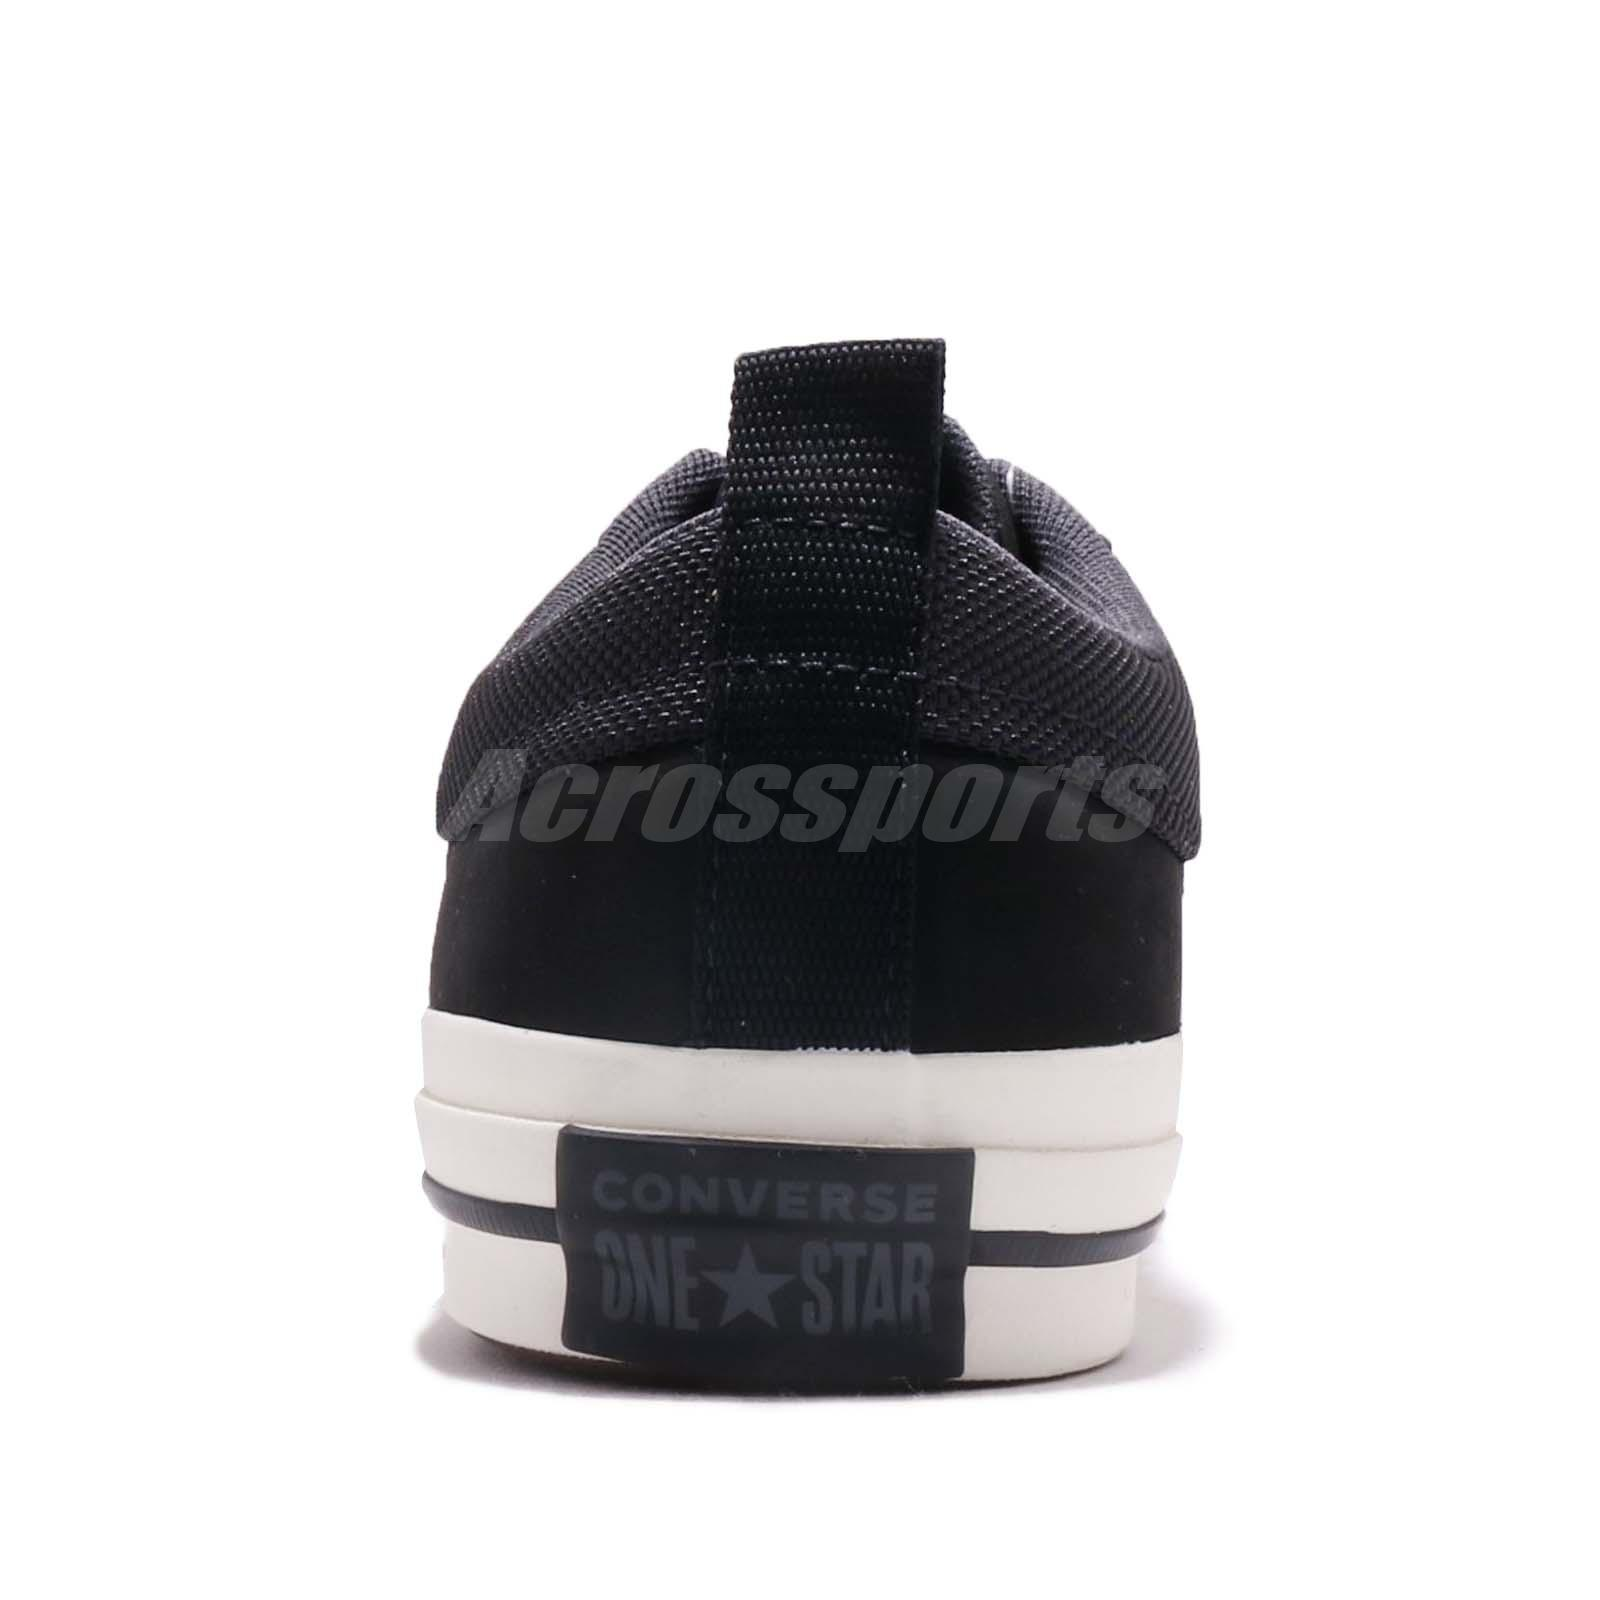 Details about Converse One Star Black Men Women Skate Boarding Casual Shoes Sneakers 162545C